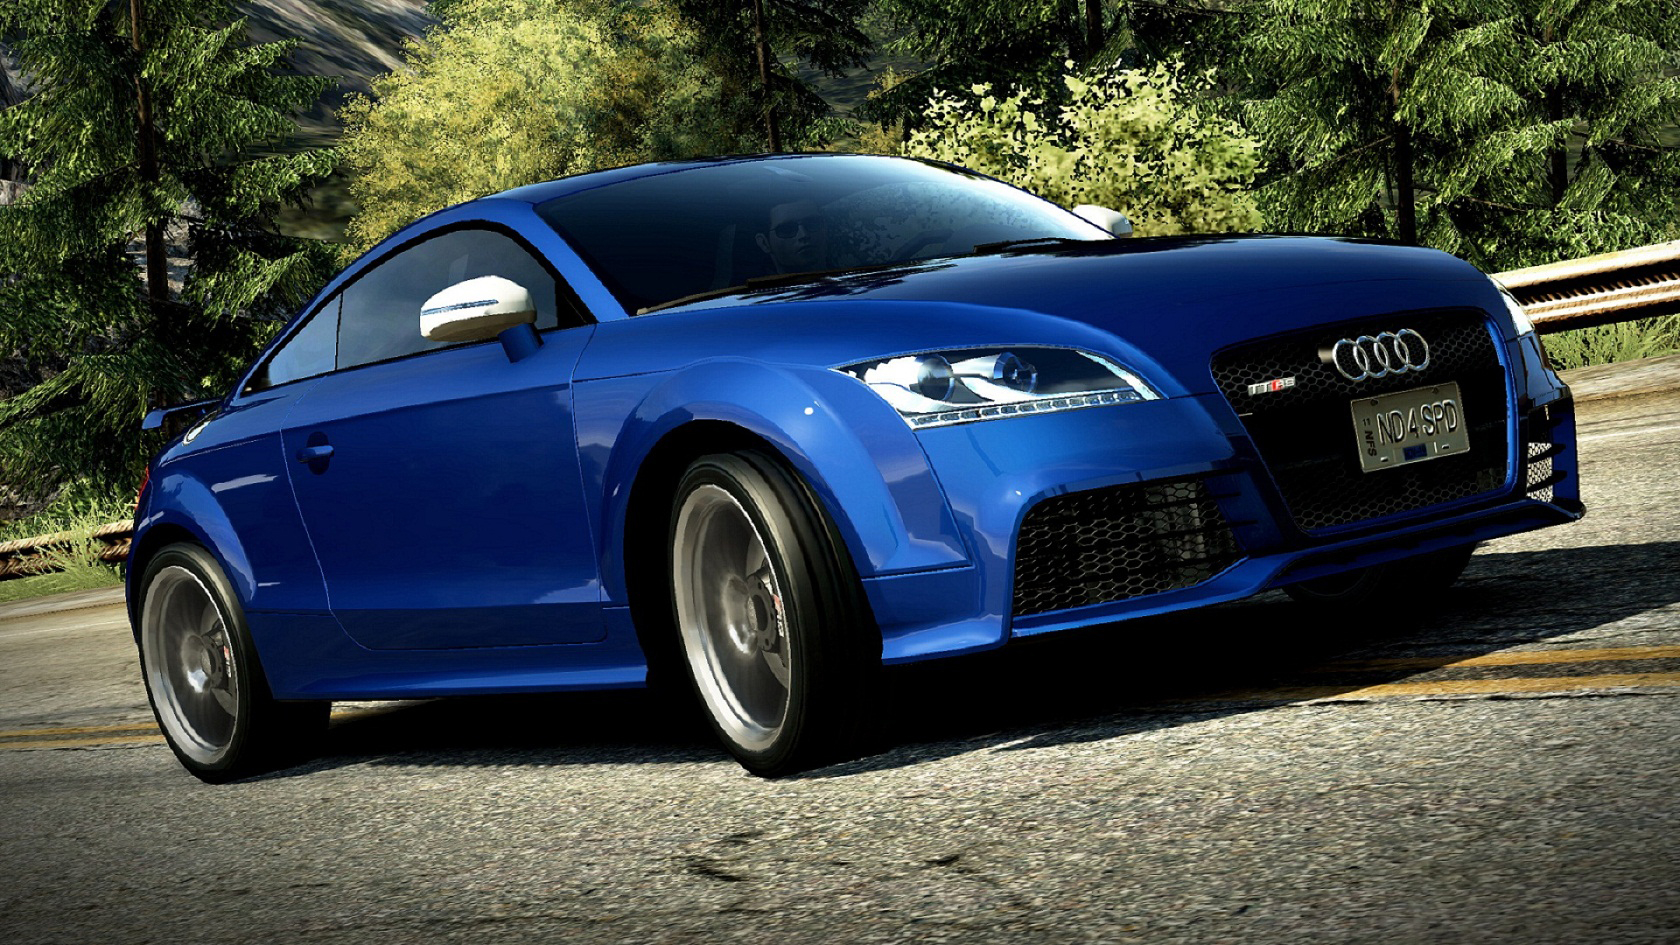 Audi TT RS need HD Wallpaper